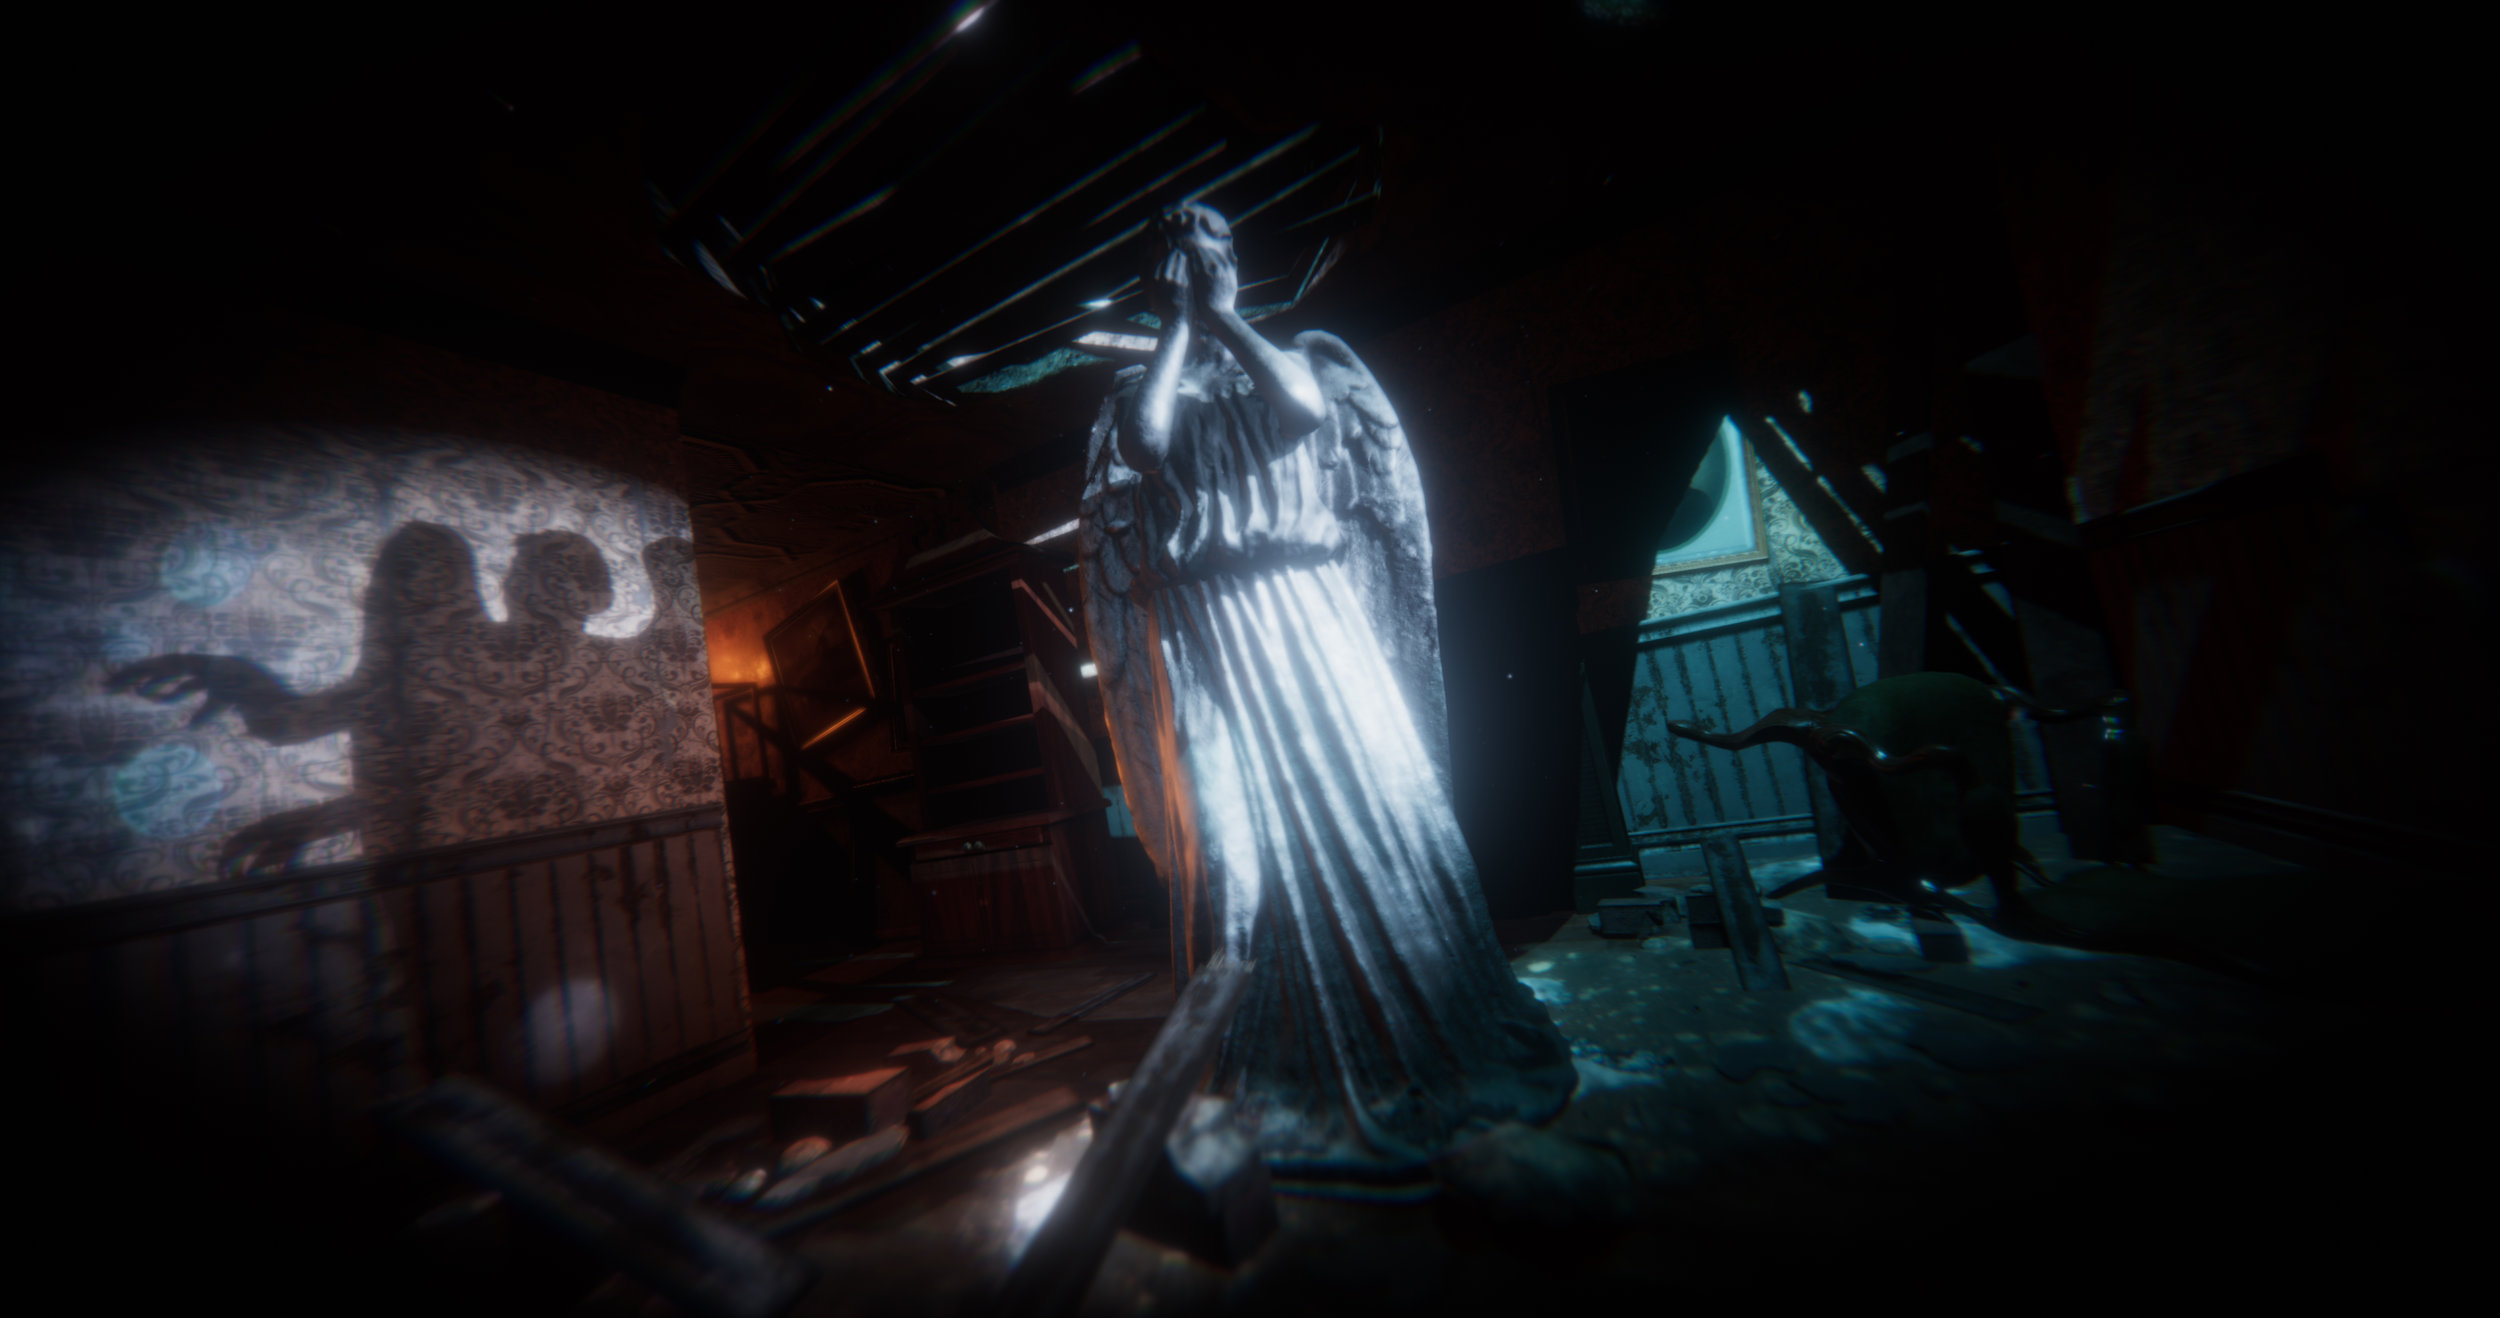 The game features iconic monsters including The Daleks & Weeping Angels